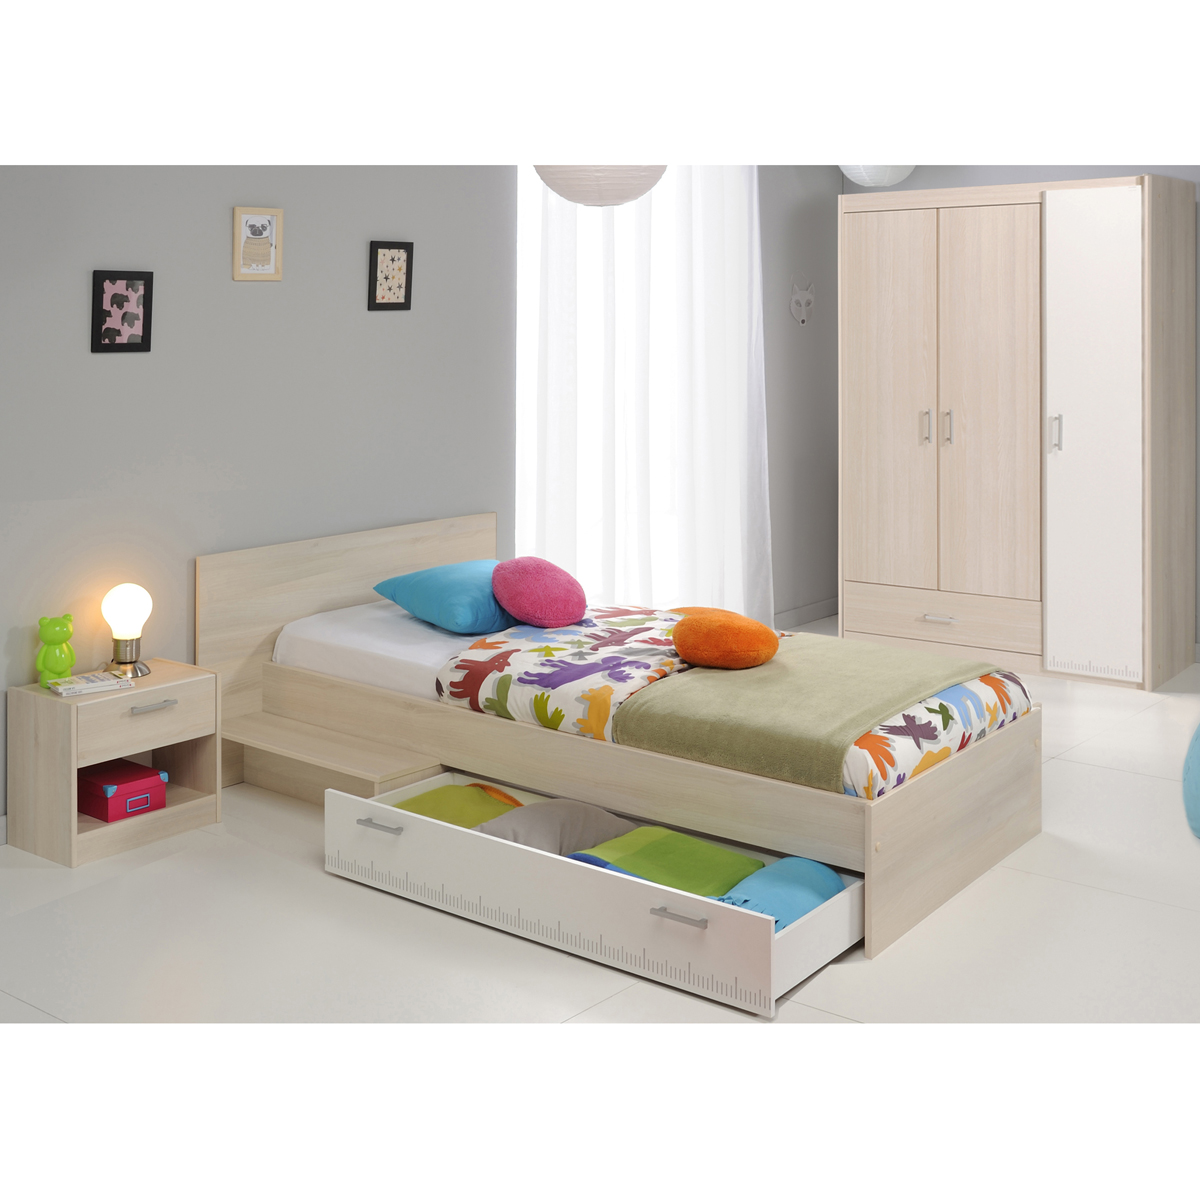 jugendzimmer charly 14 3 teilig kinderzimmer nako bett. Black Bedroom Furniture Sets. Home Design Ideas